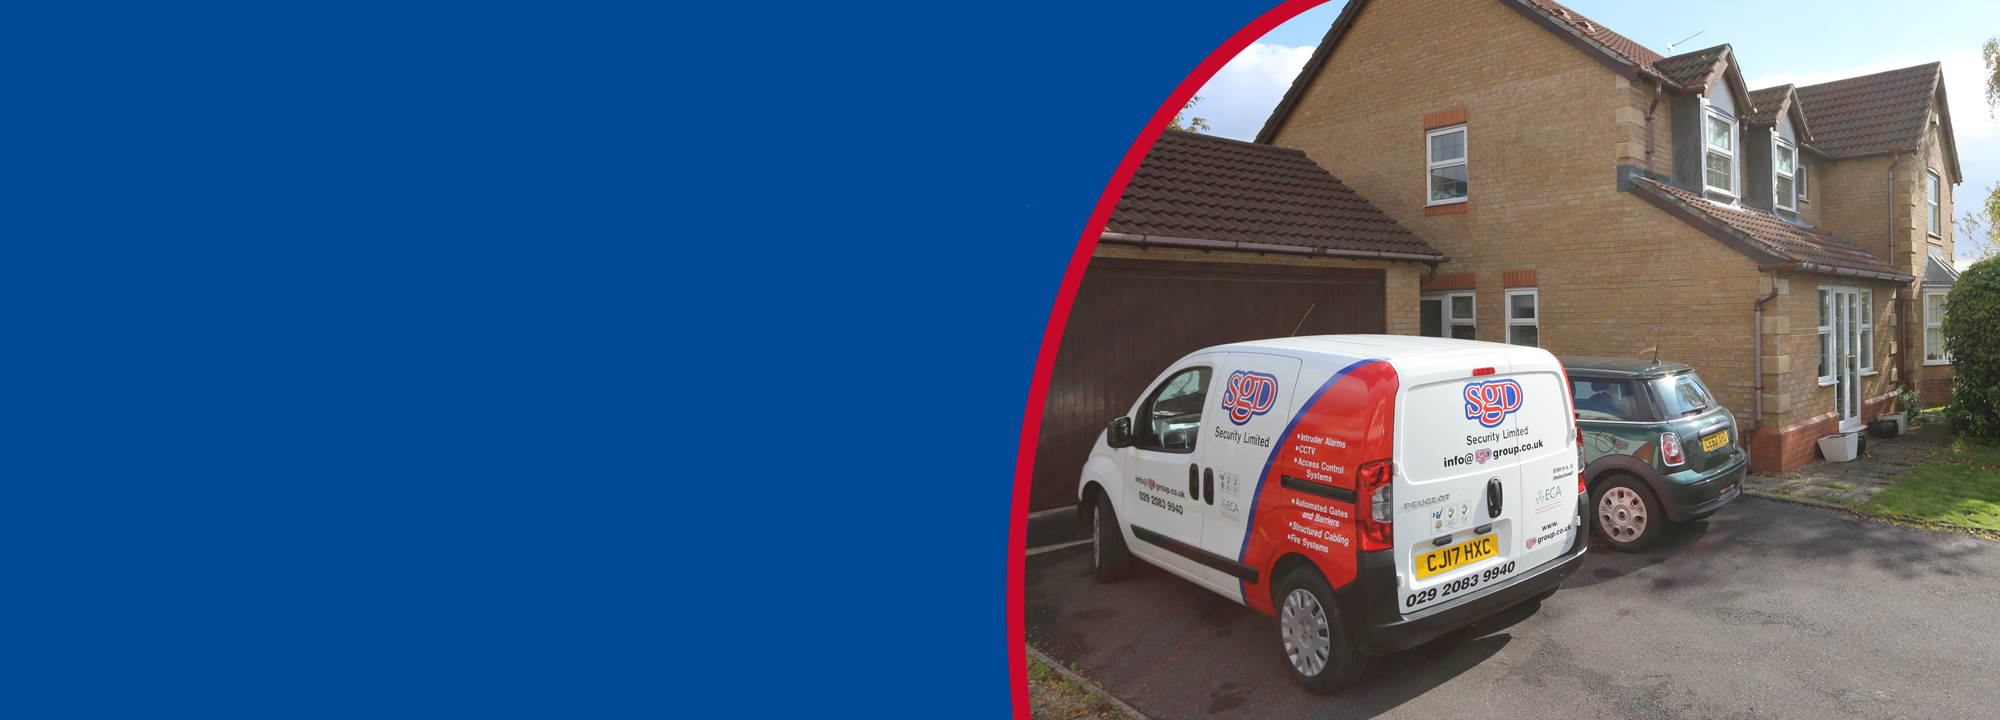 CCTV Installers Cardiff